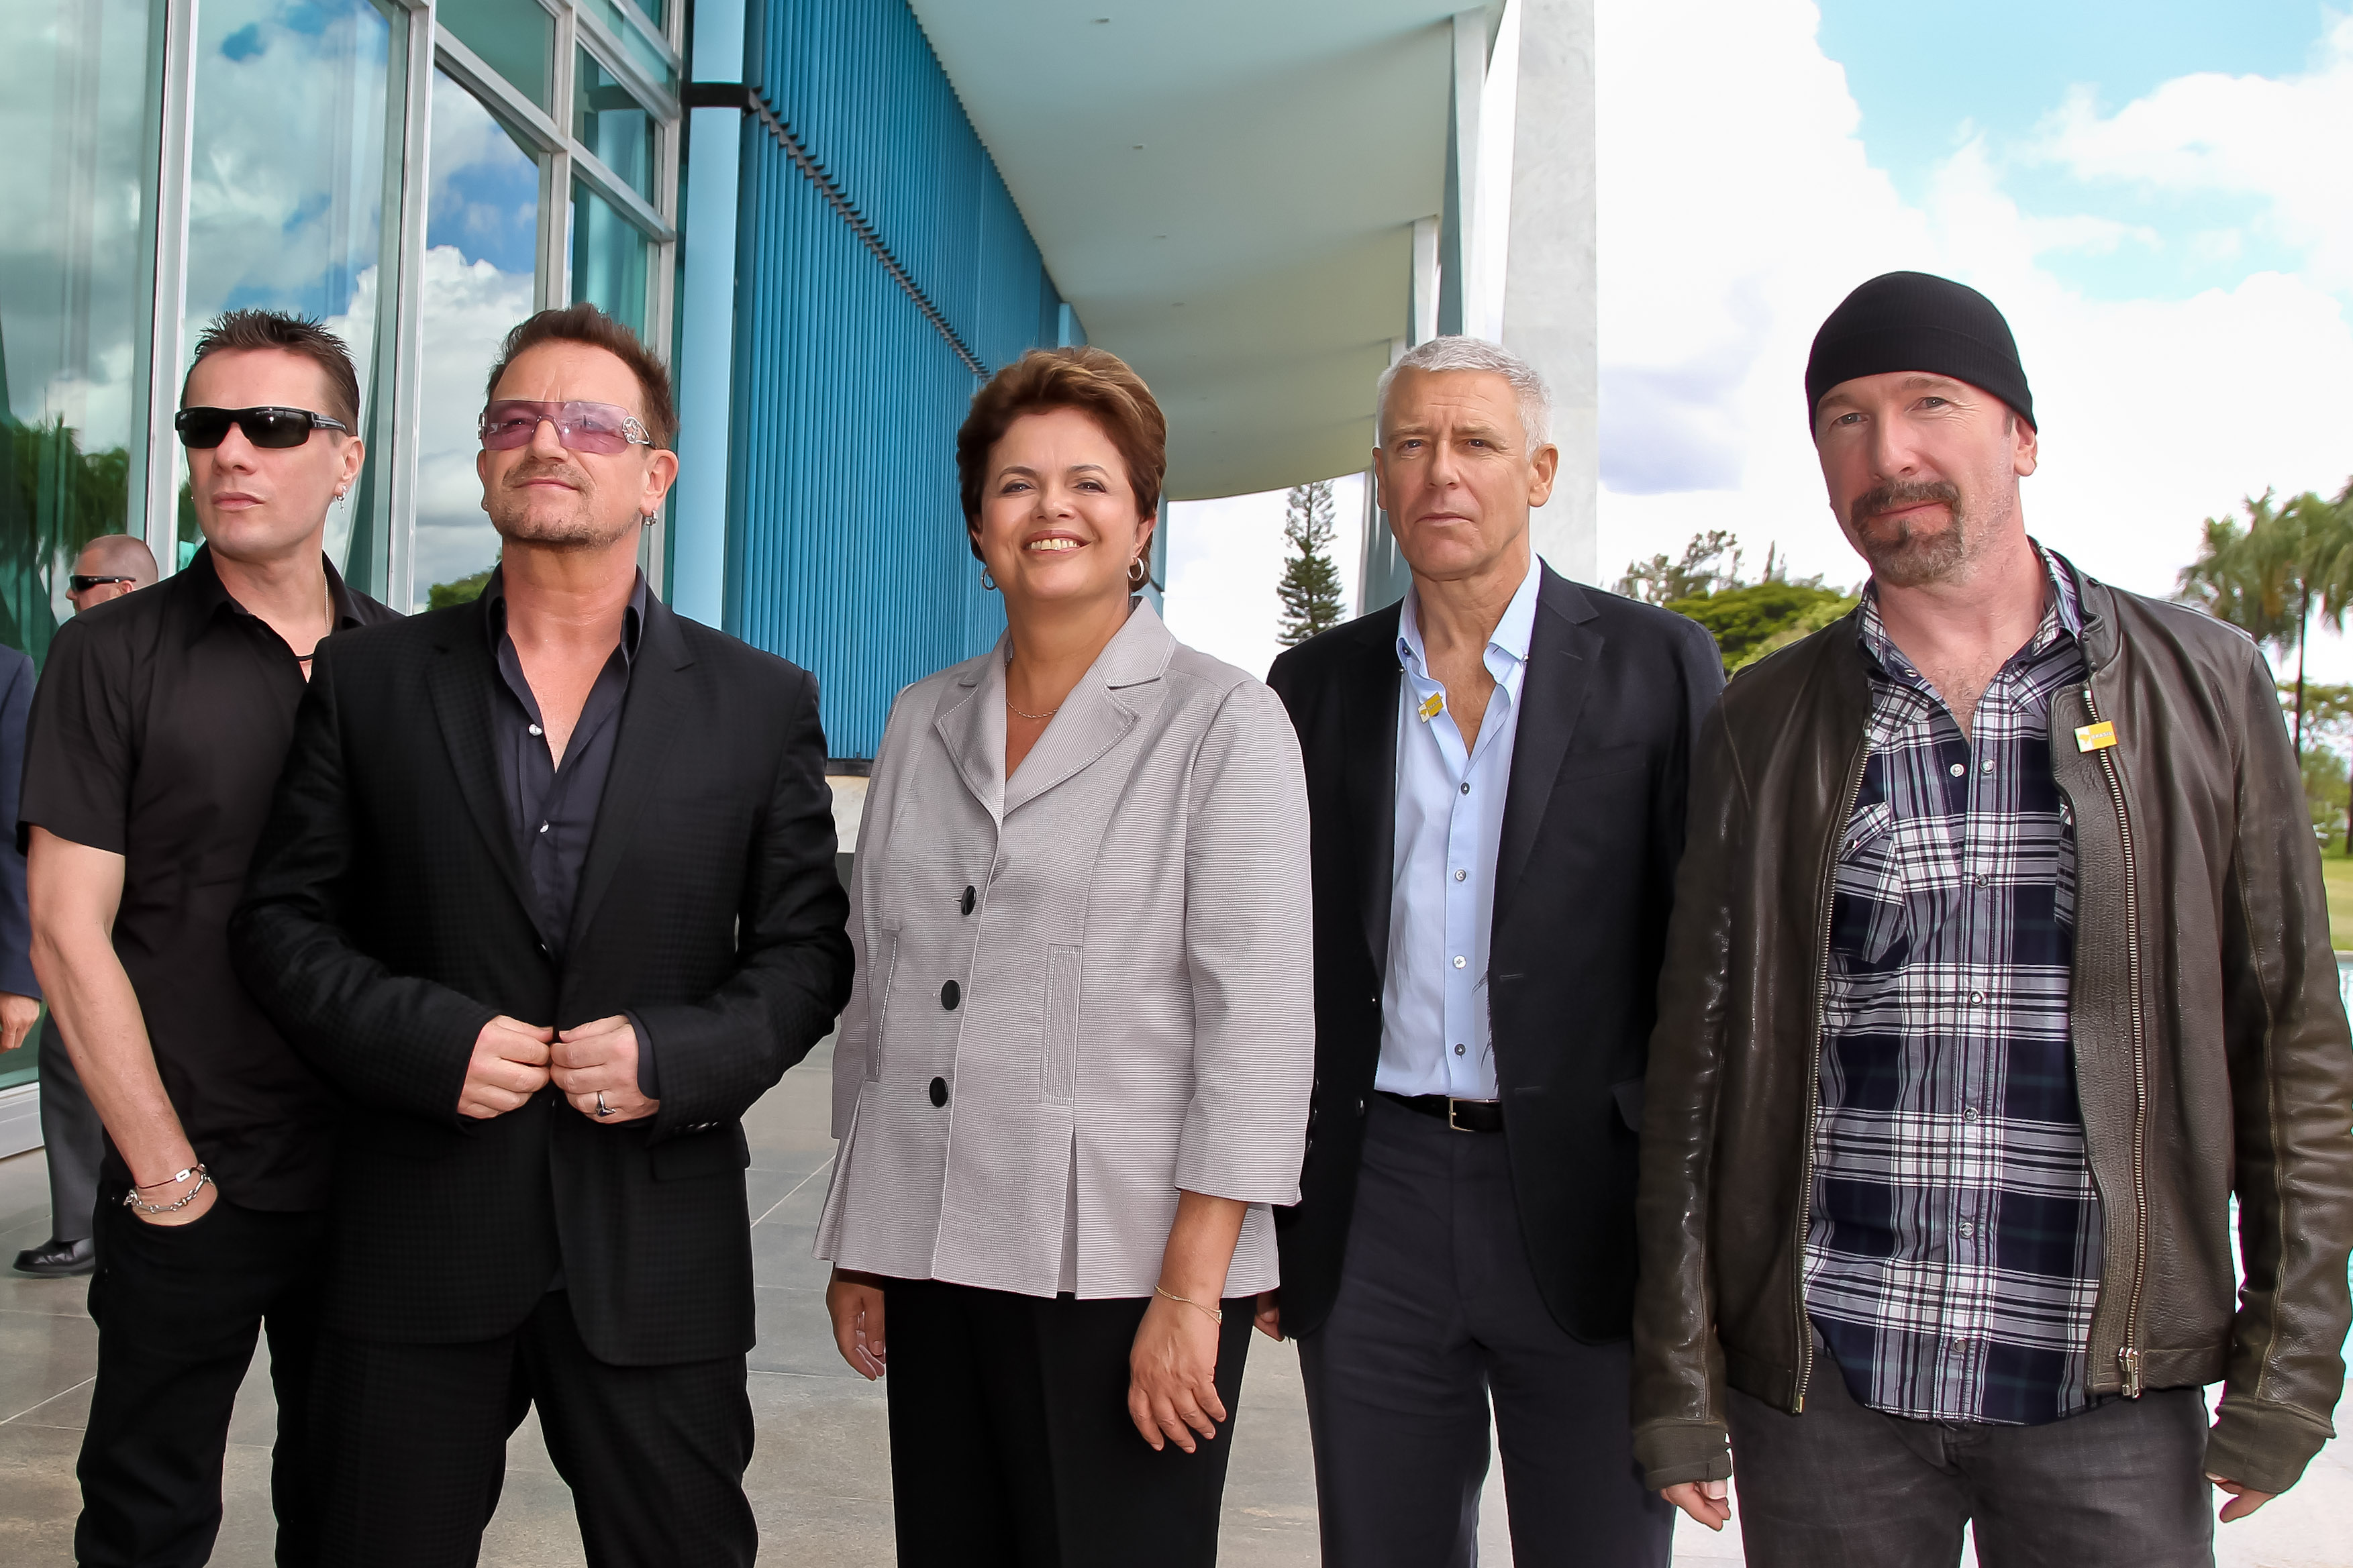 U2 with Brazilian president Dilma Rousseff in 2011 (from left to right): Mullen, Bono, Rousseff, Clayton, and the Edge